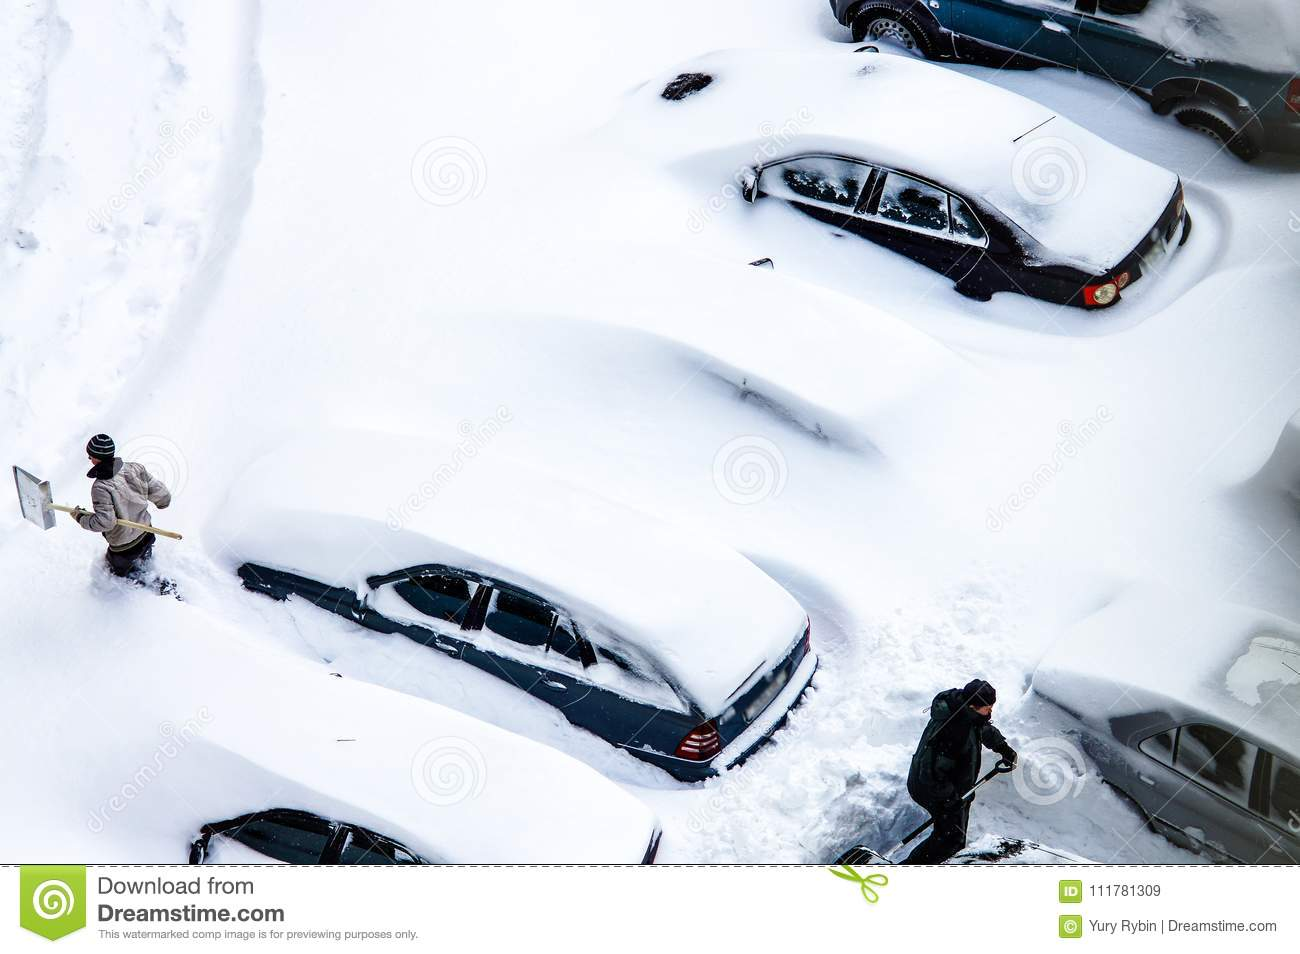 After a snowstorm, people dig out cars from under snow